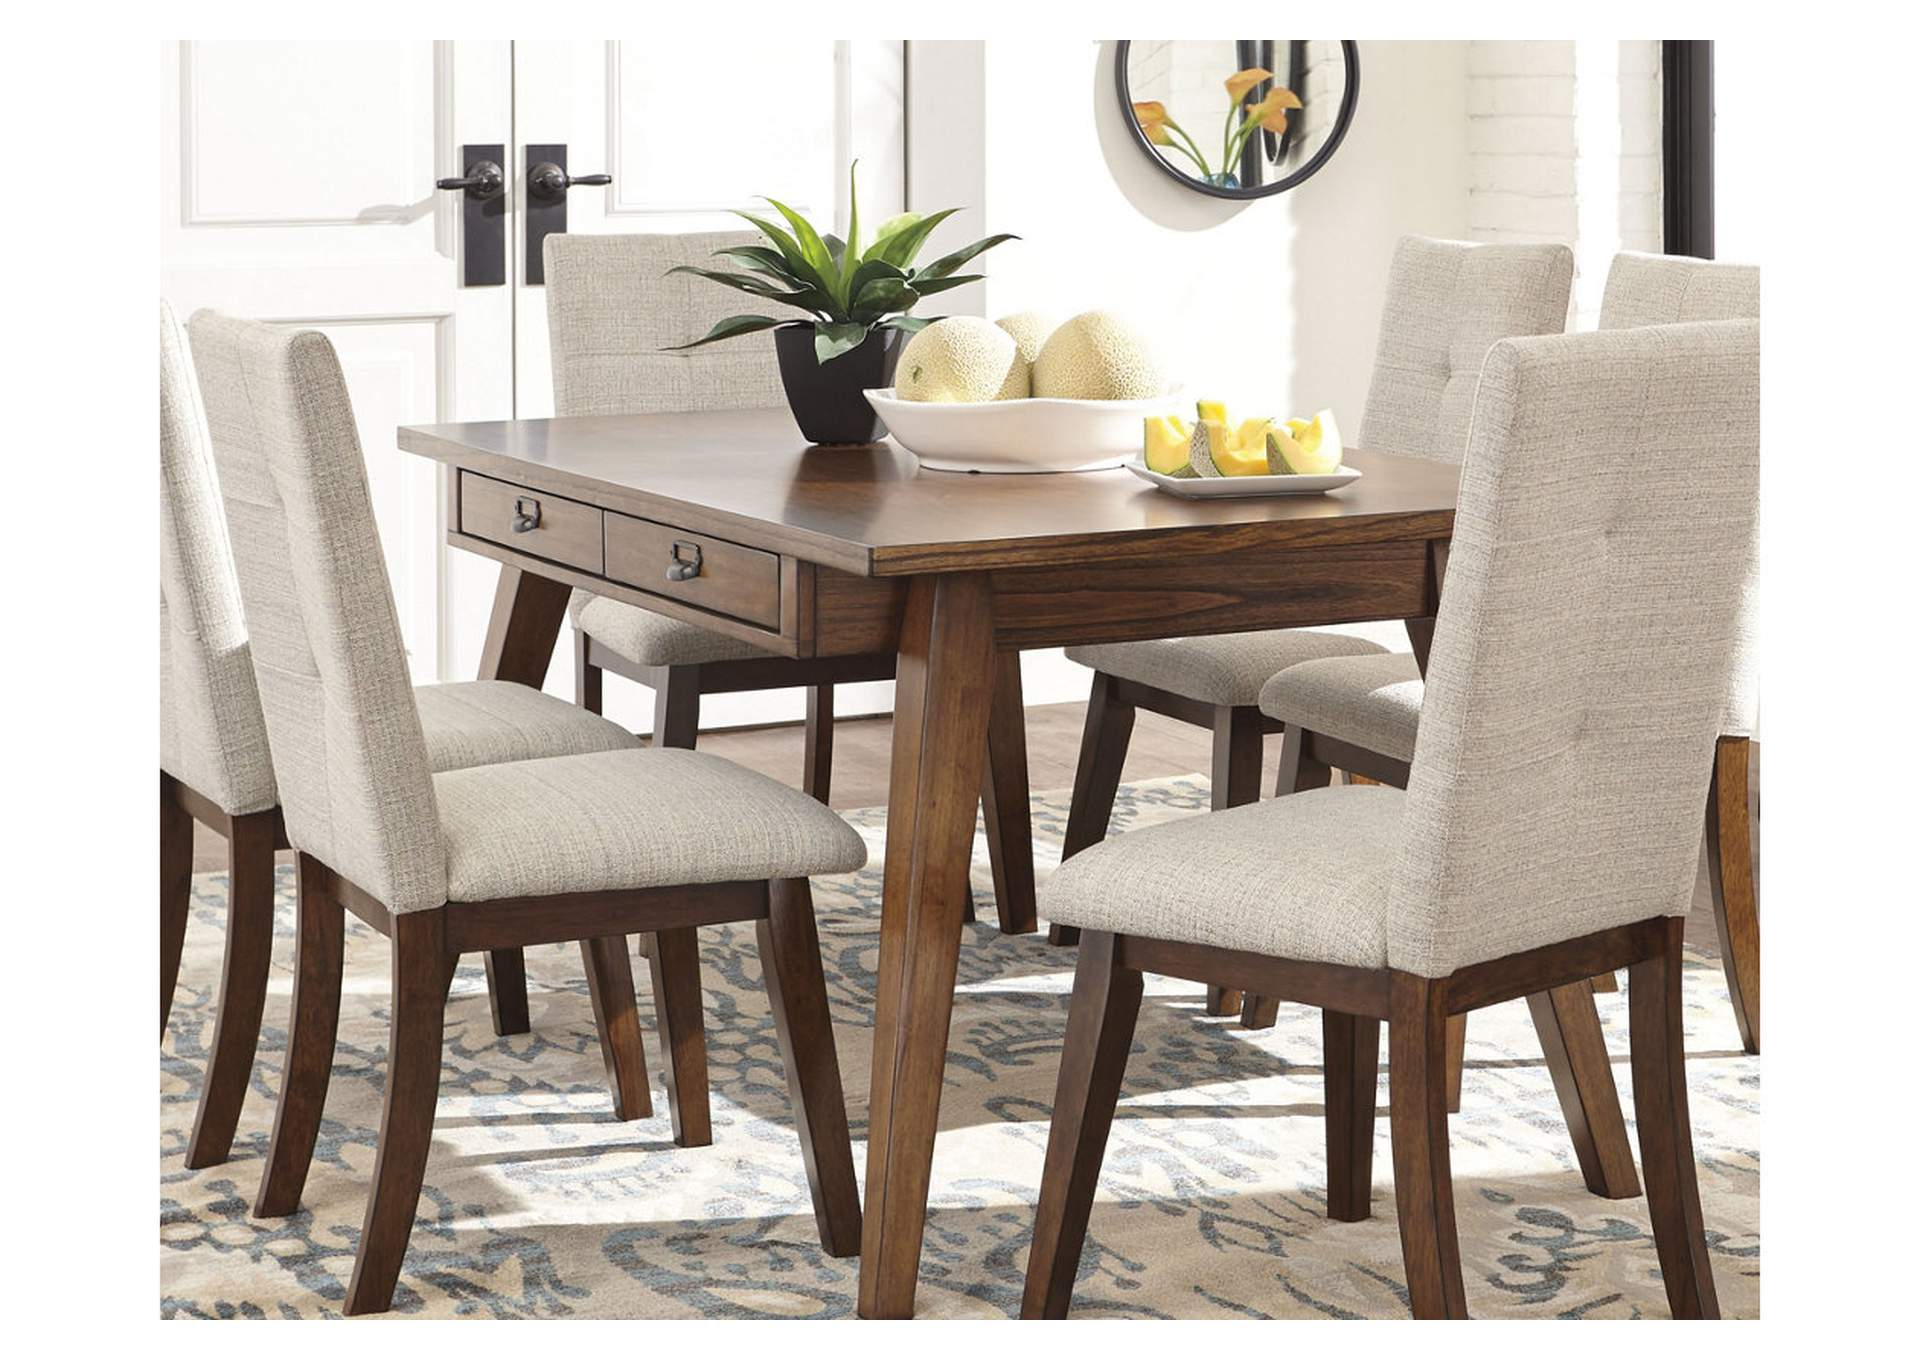 Centiar Two-Tone Brown Rectangular Dining Room Table,Signature Design By Ashley